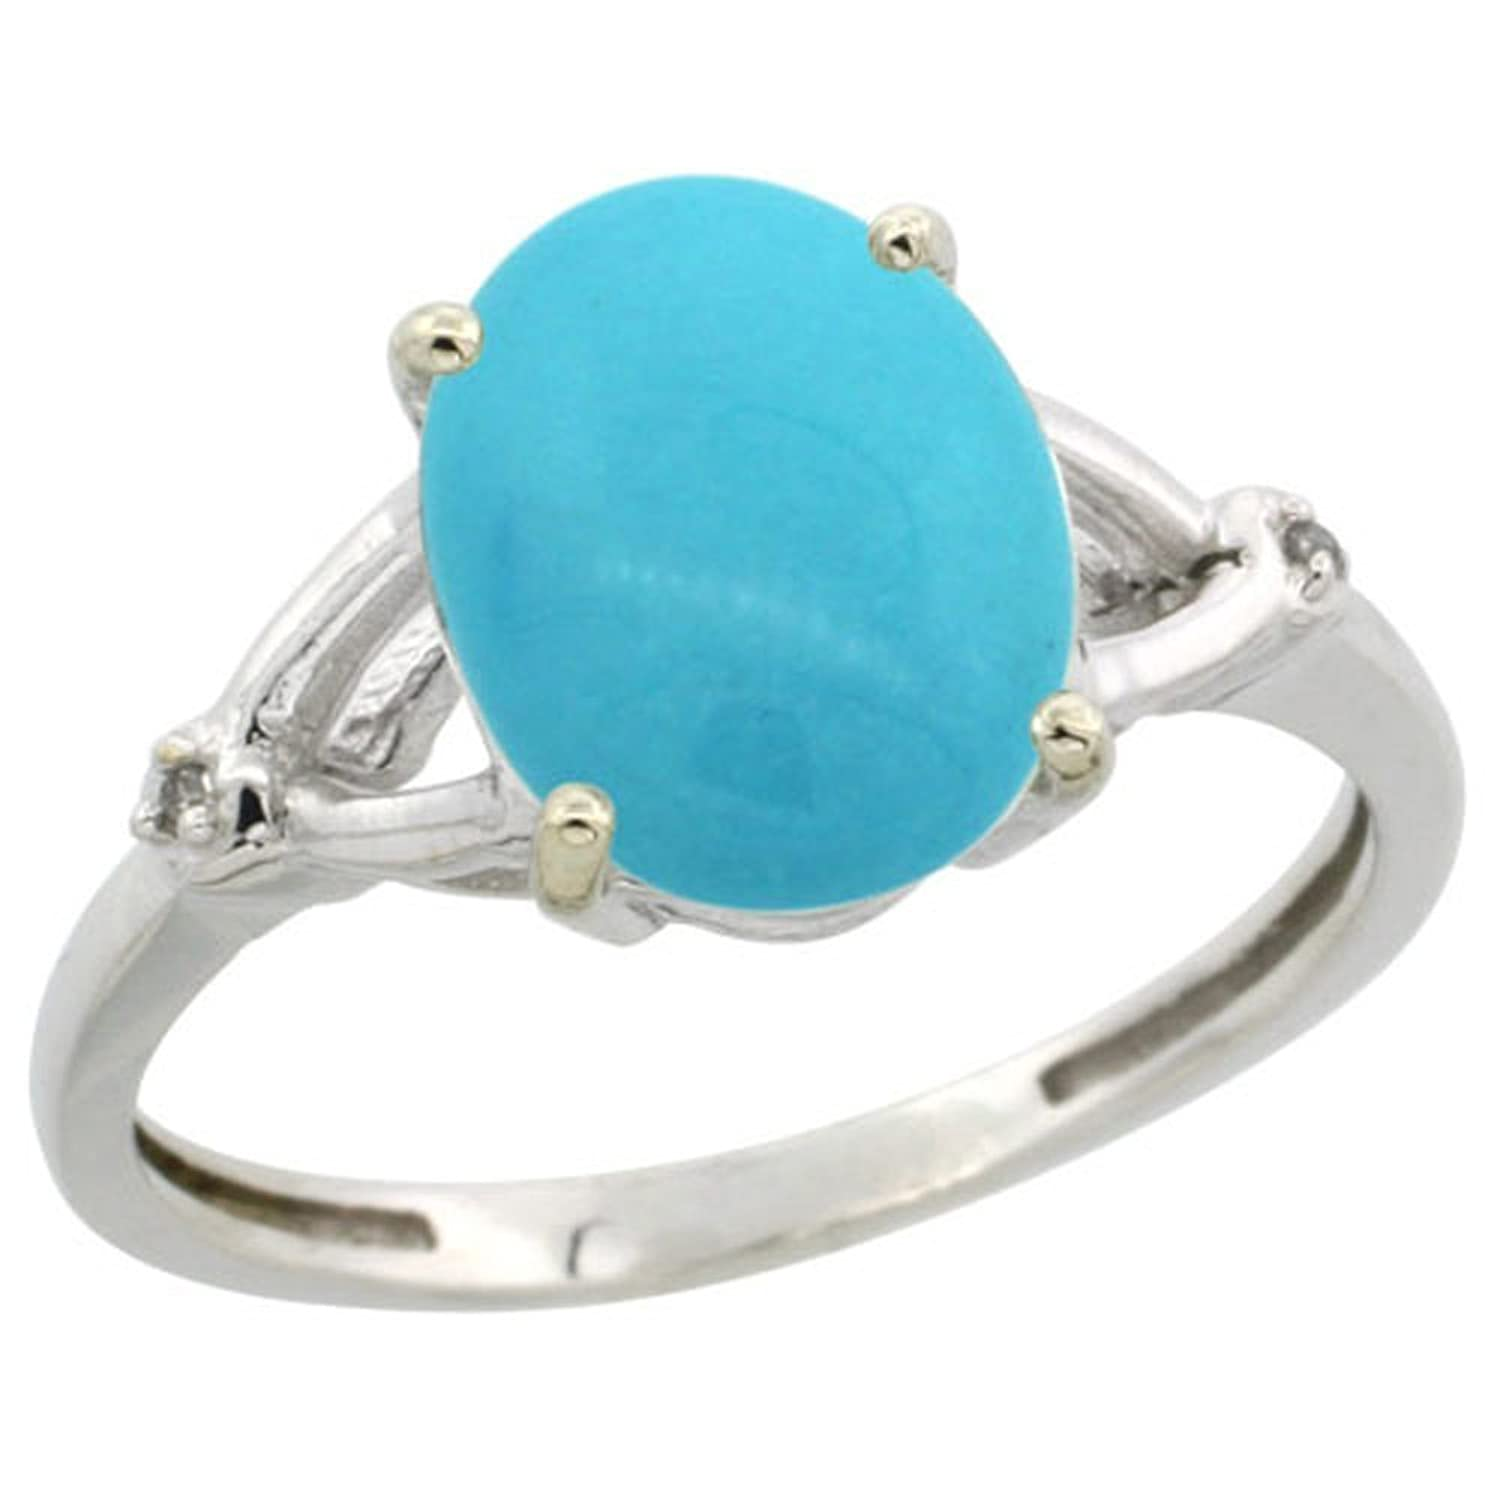 ring pinterest turquoise images size sterling on g la jewellery rings best oblong boyd silver